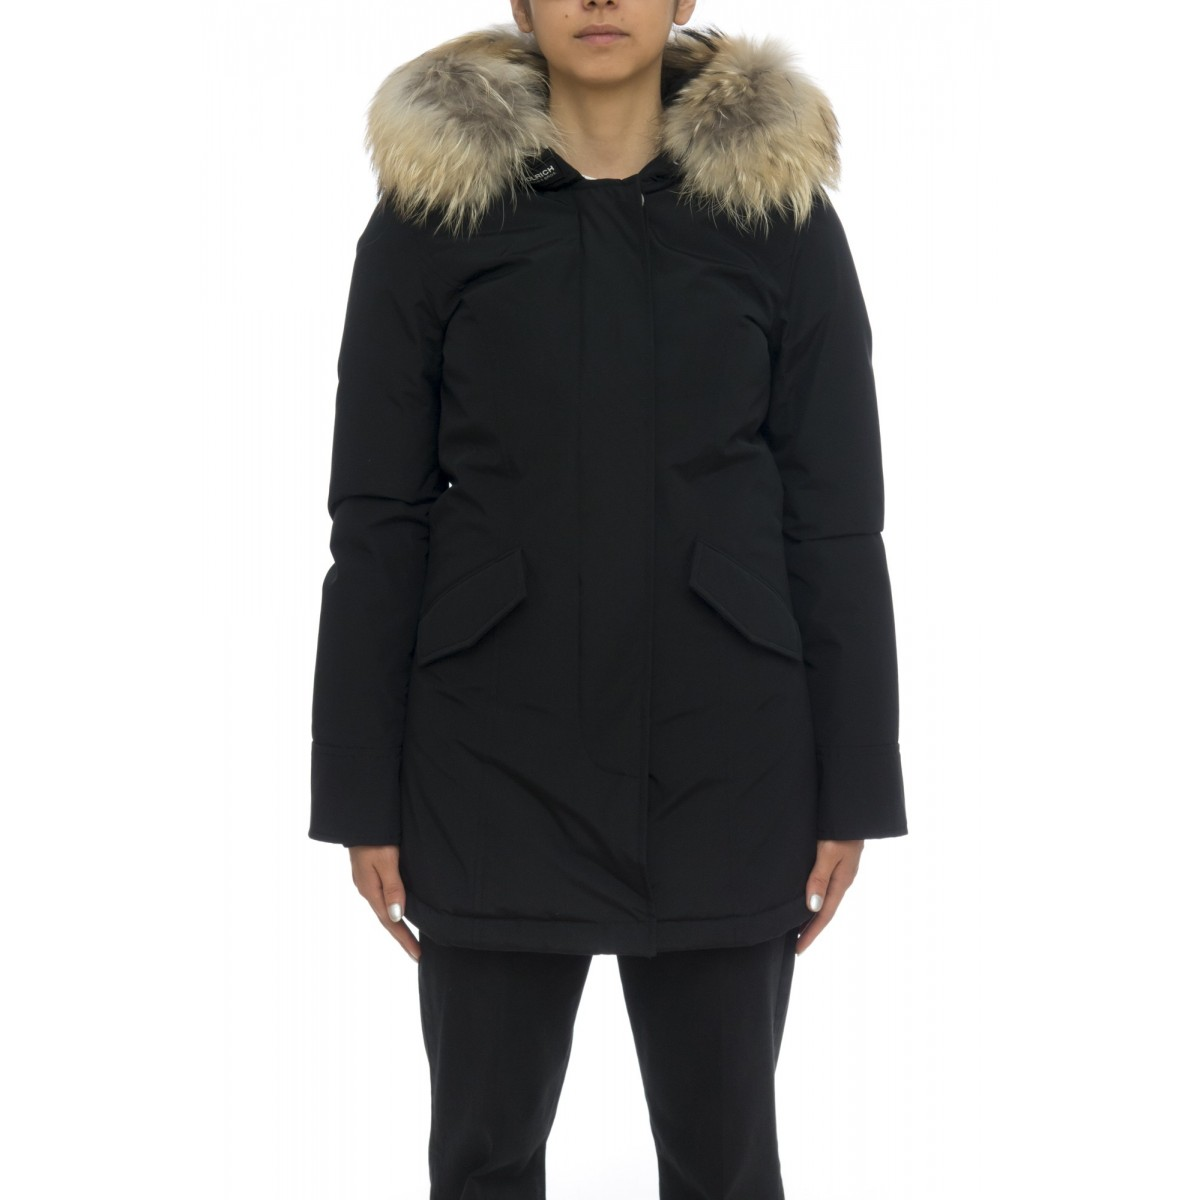 Artic Parka Woman- WWCPS1447 CN02 w's artic parka